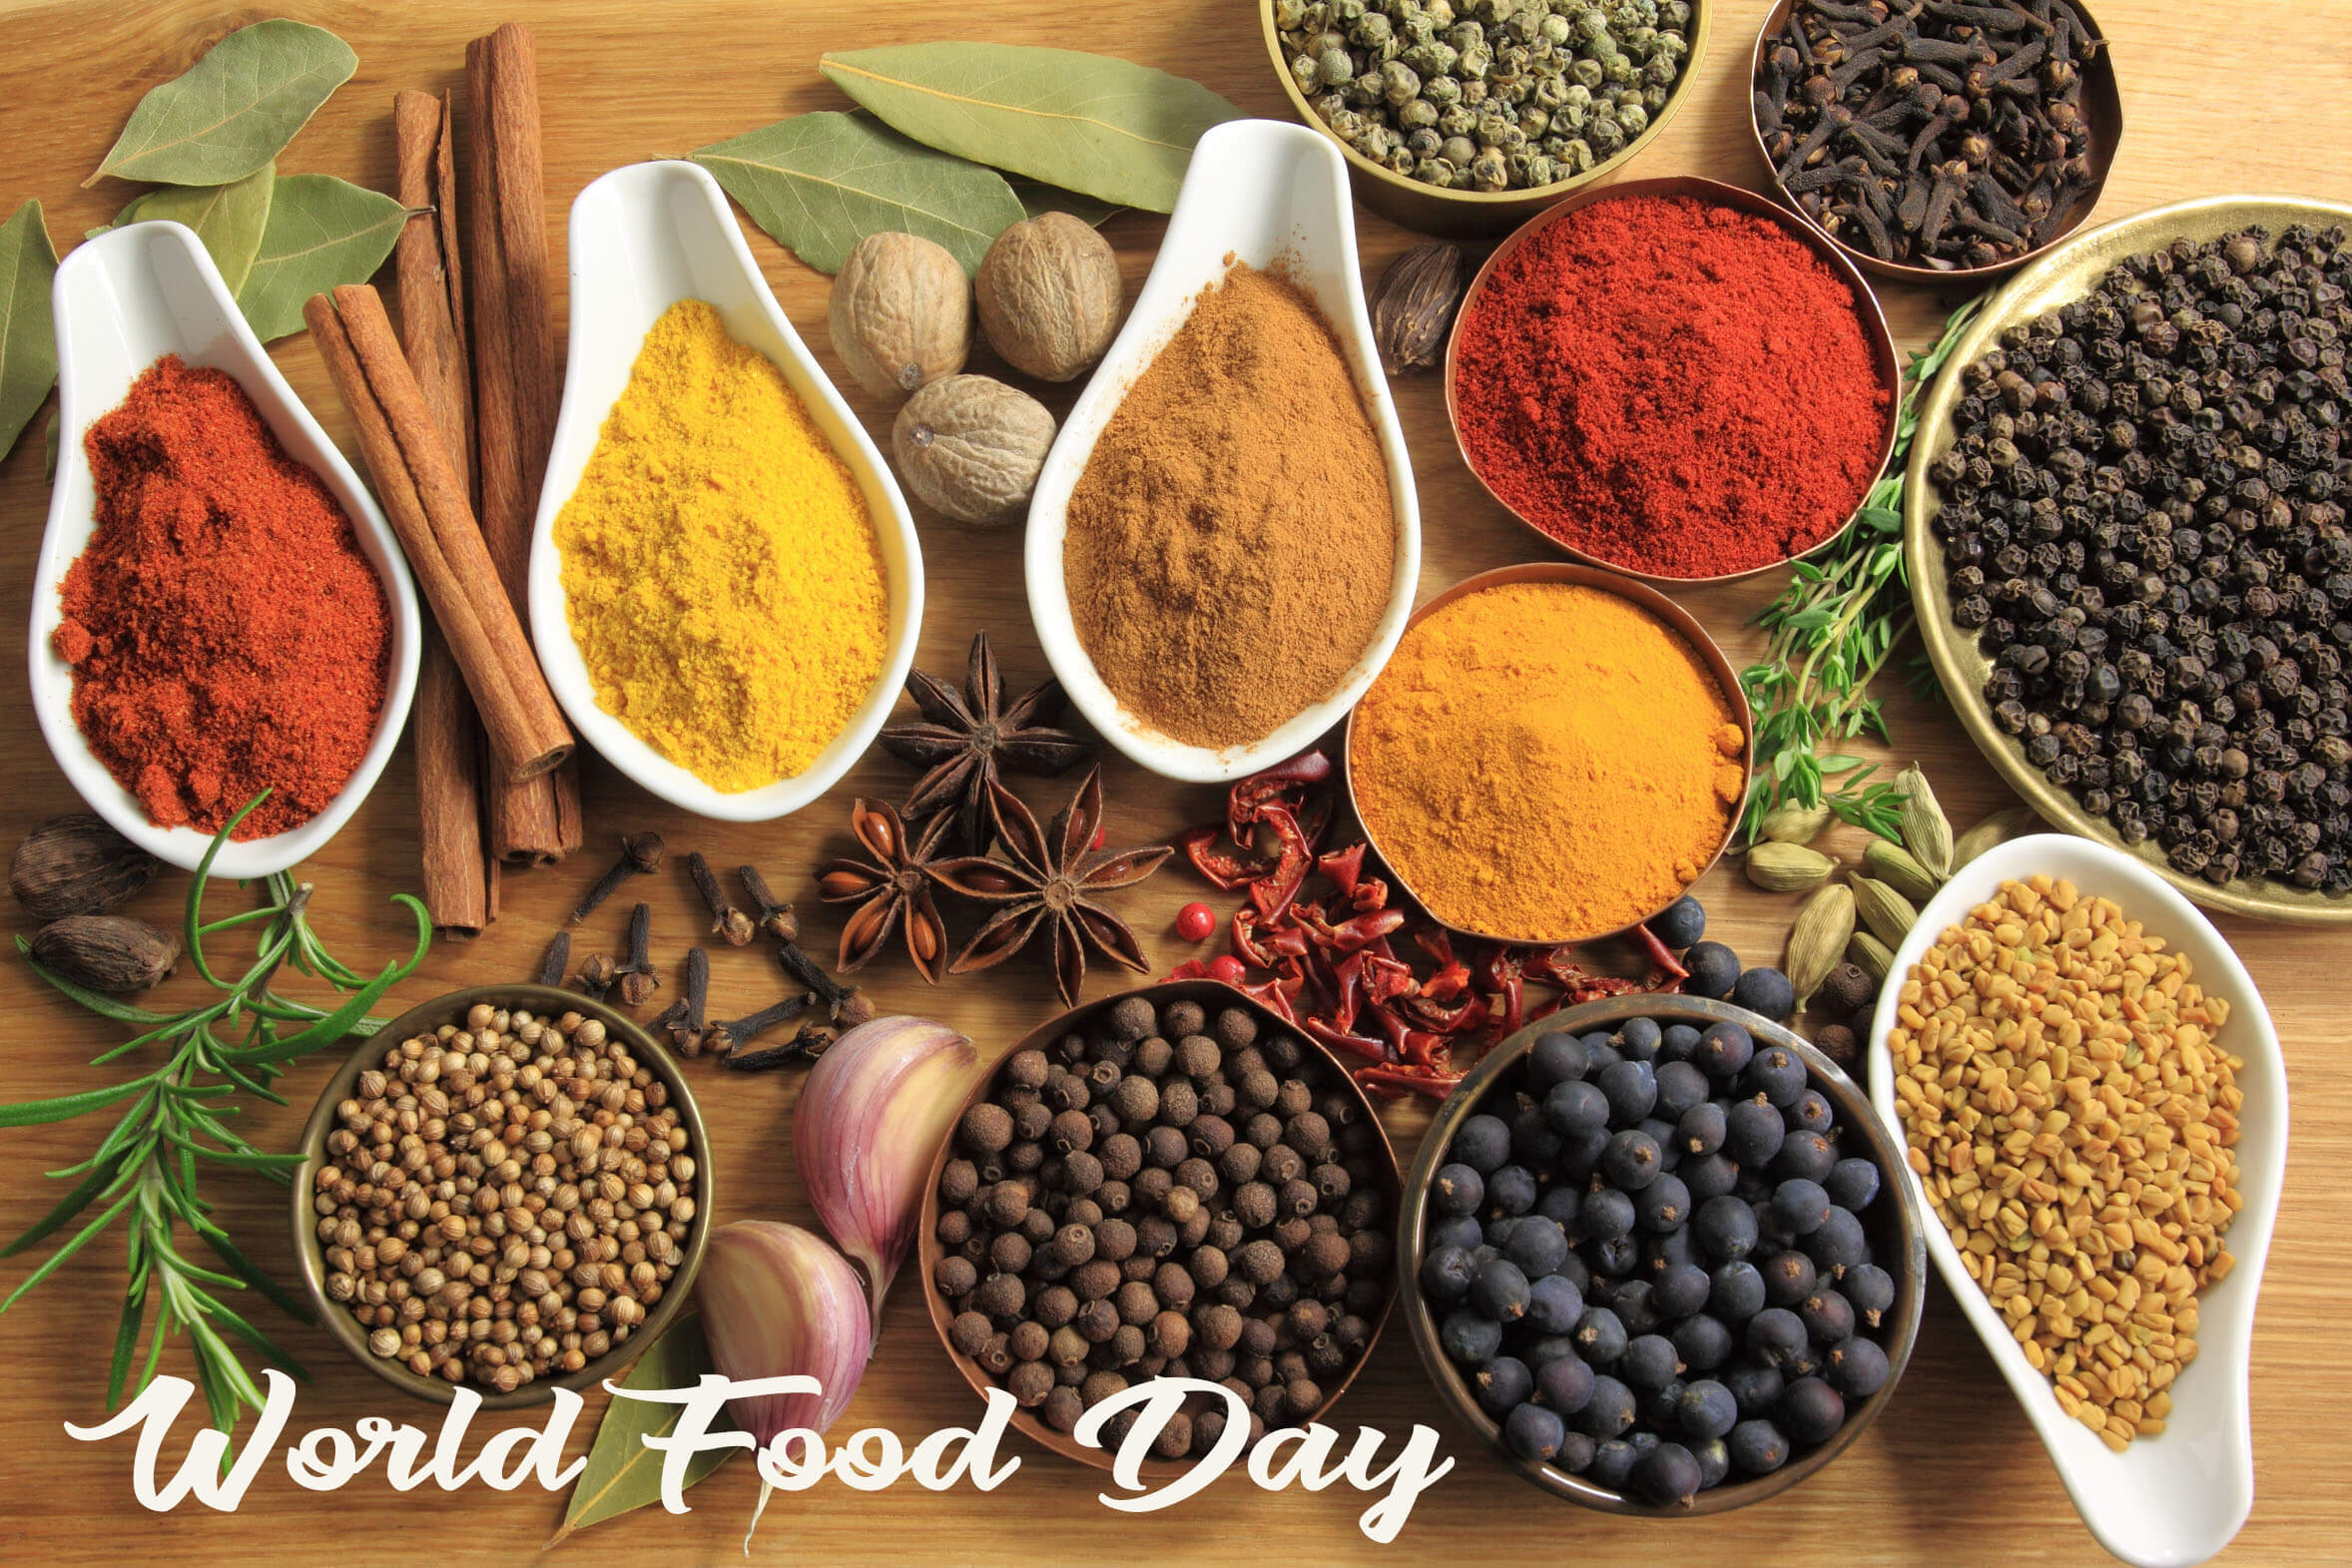 world food day october 16 desktop pc hd wallpaper